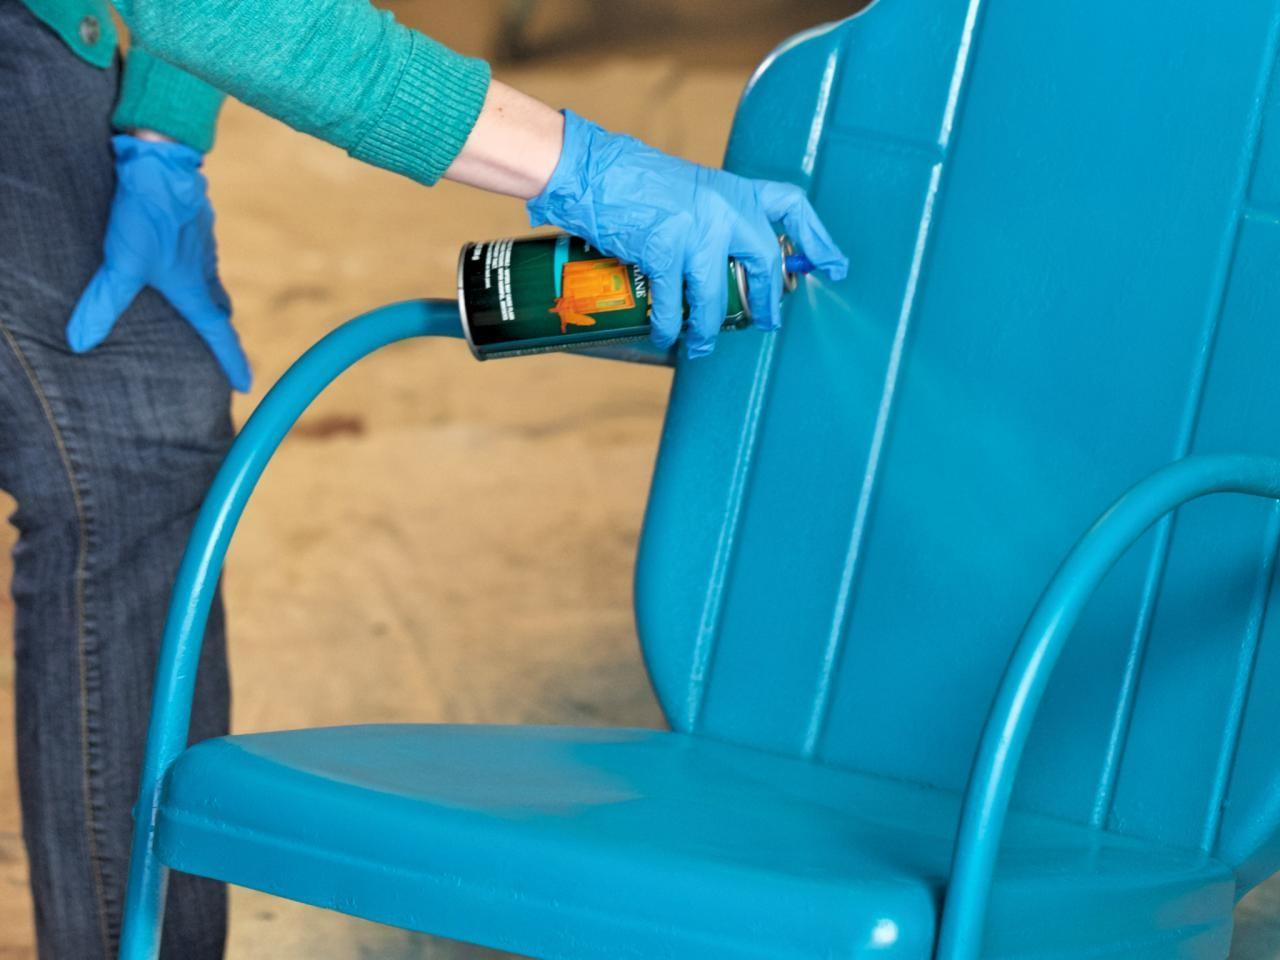 Redecorate With What You Have - spray paint